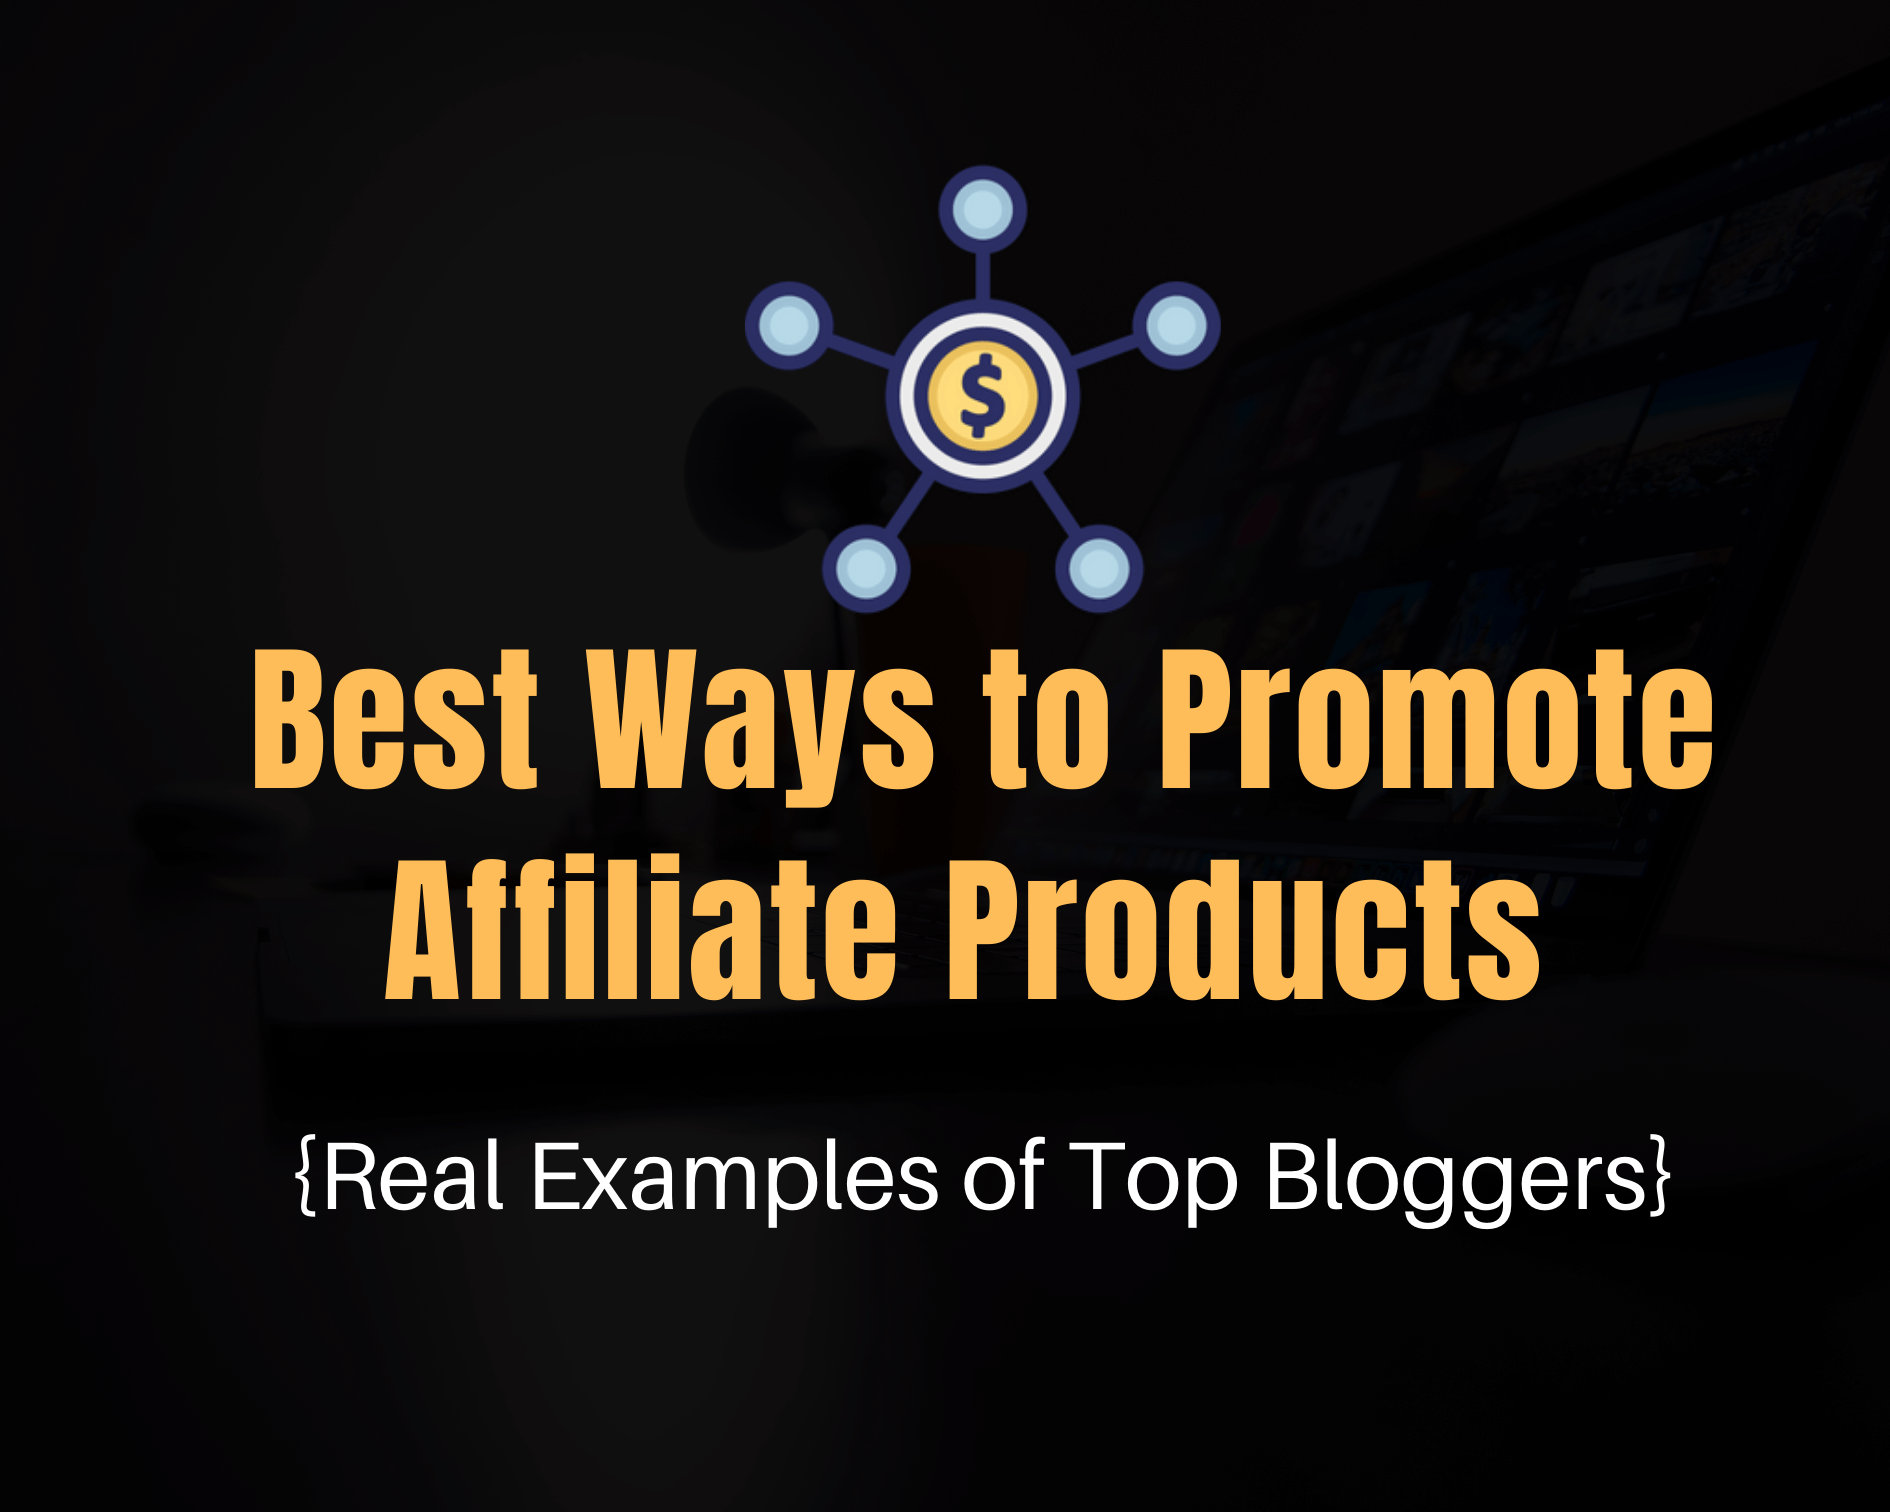 Top 6 Killer Ways to Promote Affiliate Products on Your Blog